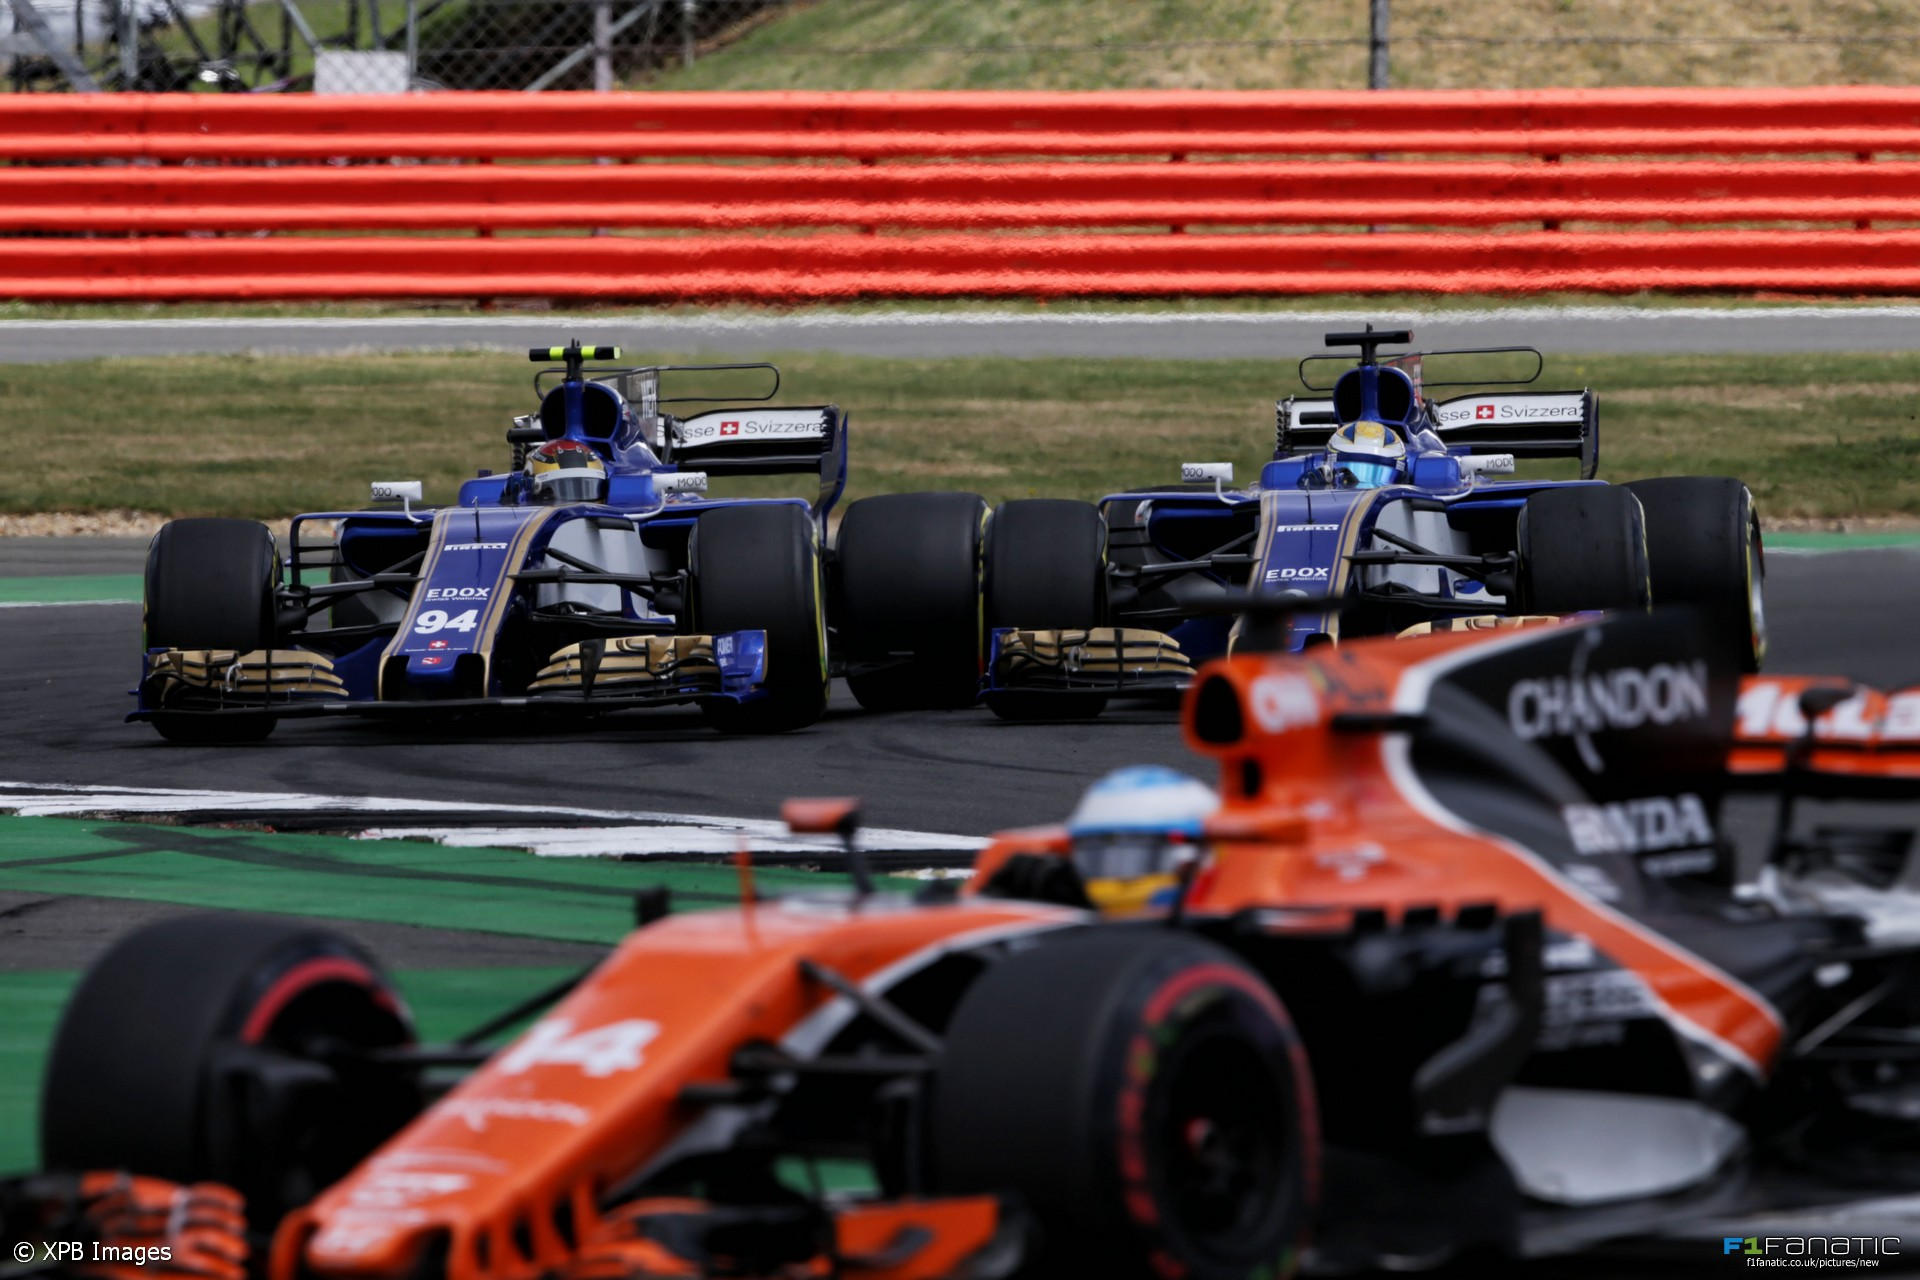 Pascal Wehrlein and Marcus Ericsson, Sauber, Silverstone, 2017